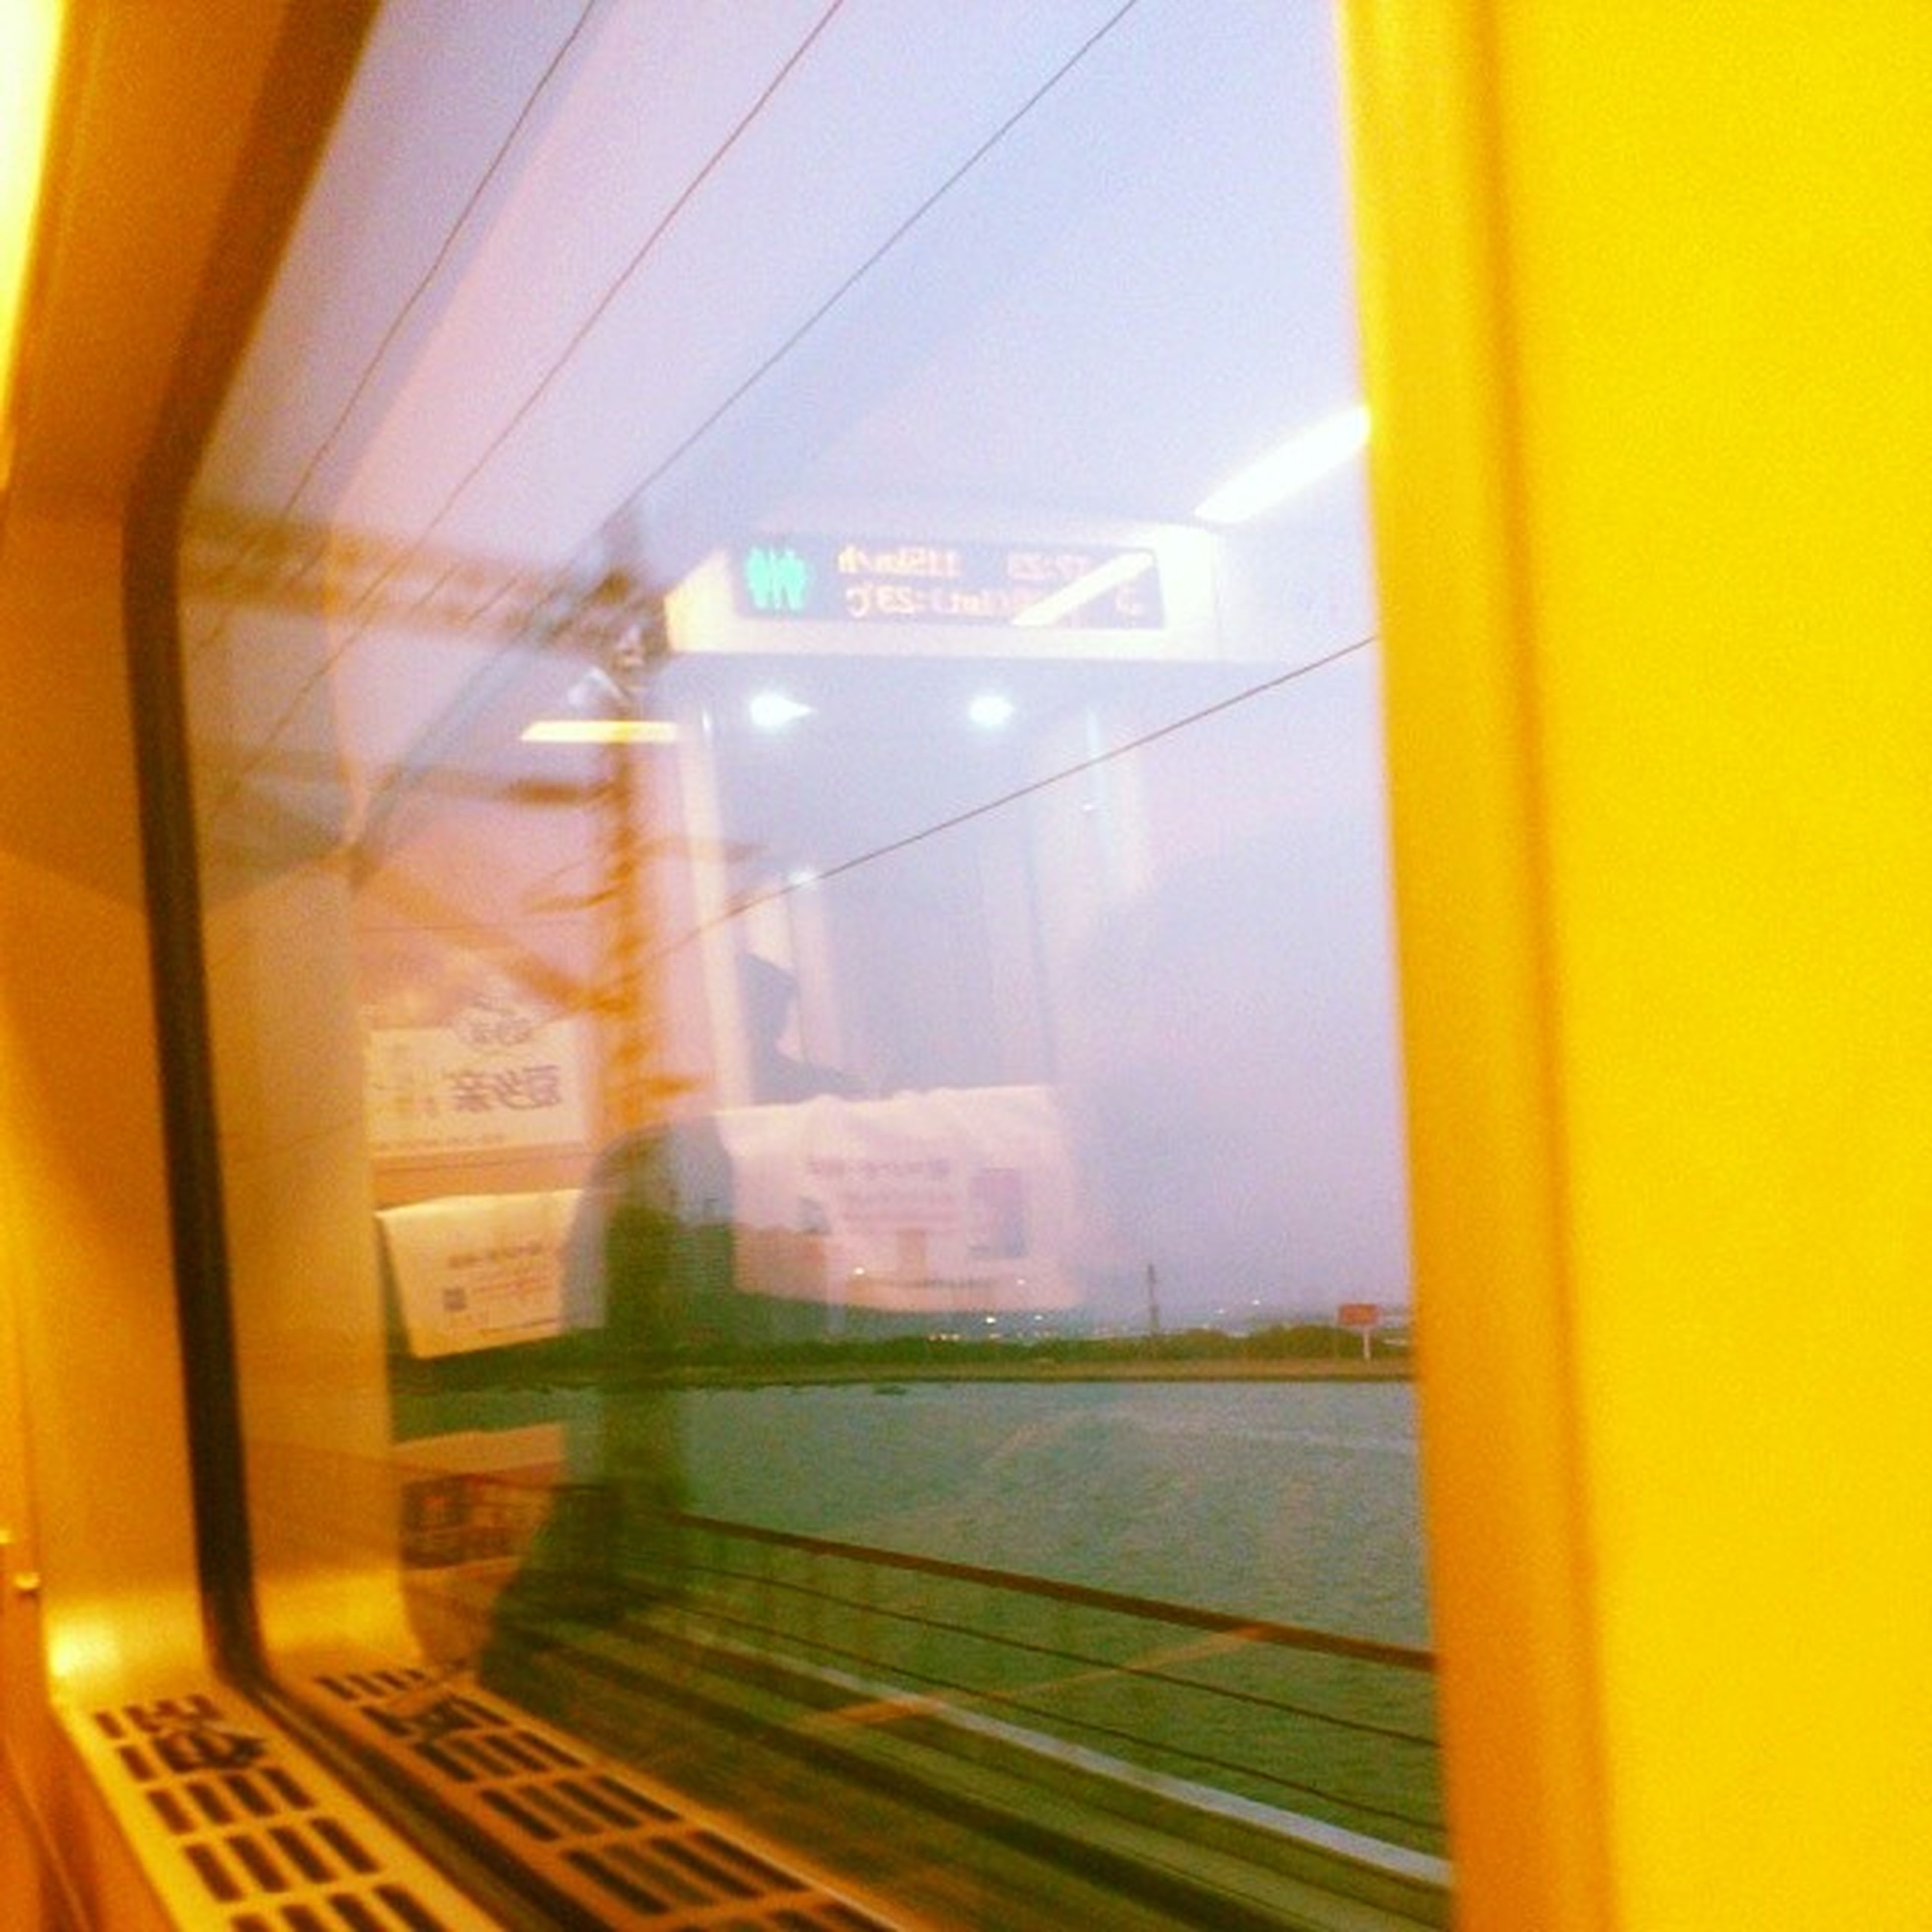 transportation, glass - material, window, transparent, indoors, vehicle interior, public transportation, mode of transport, travel, yellow, train - vehicle, journey, reflection, rail transportation, built structure, on the move, communication, architecture, land vehicle, train